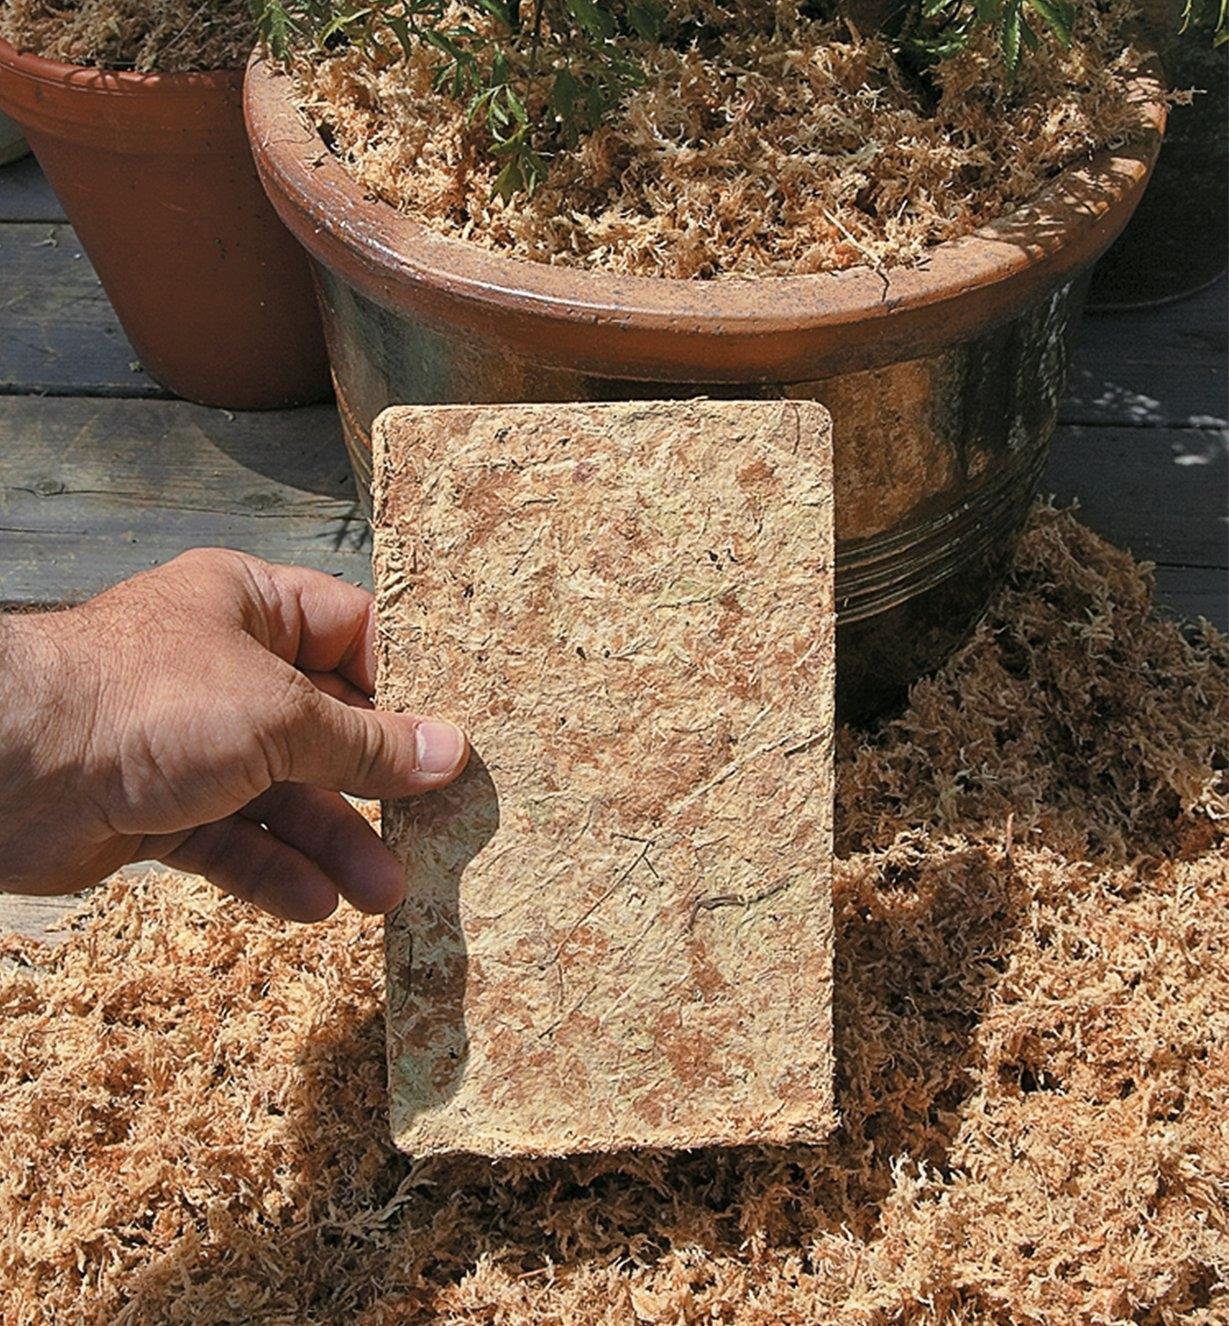 Compressed Sphagnum Moss packet in front of a planter filled with expanded moss